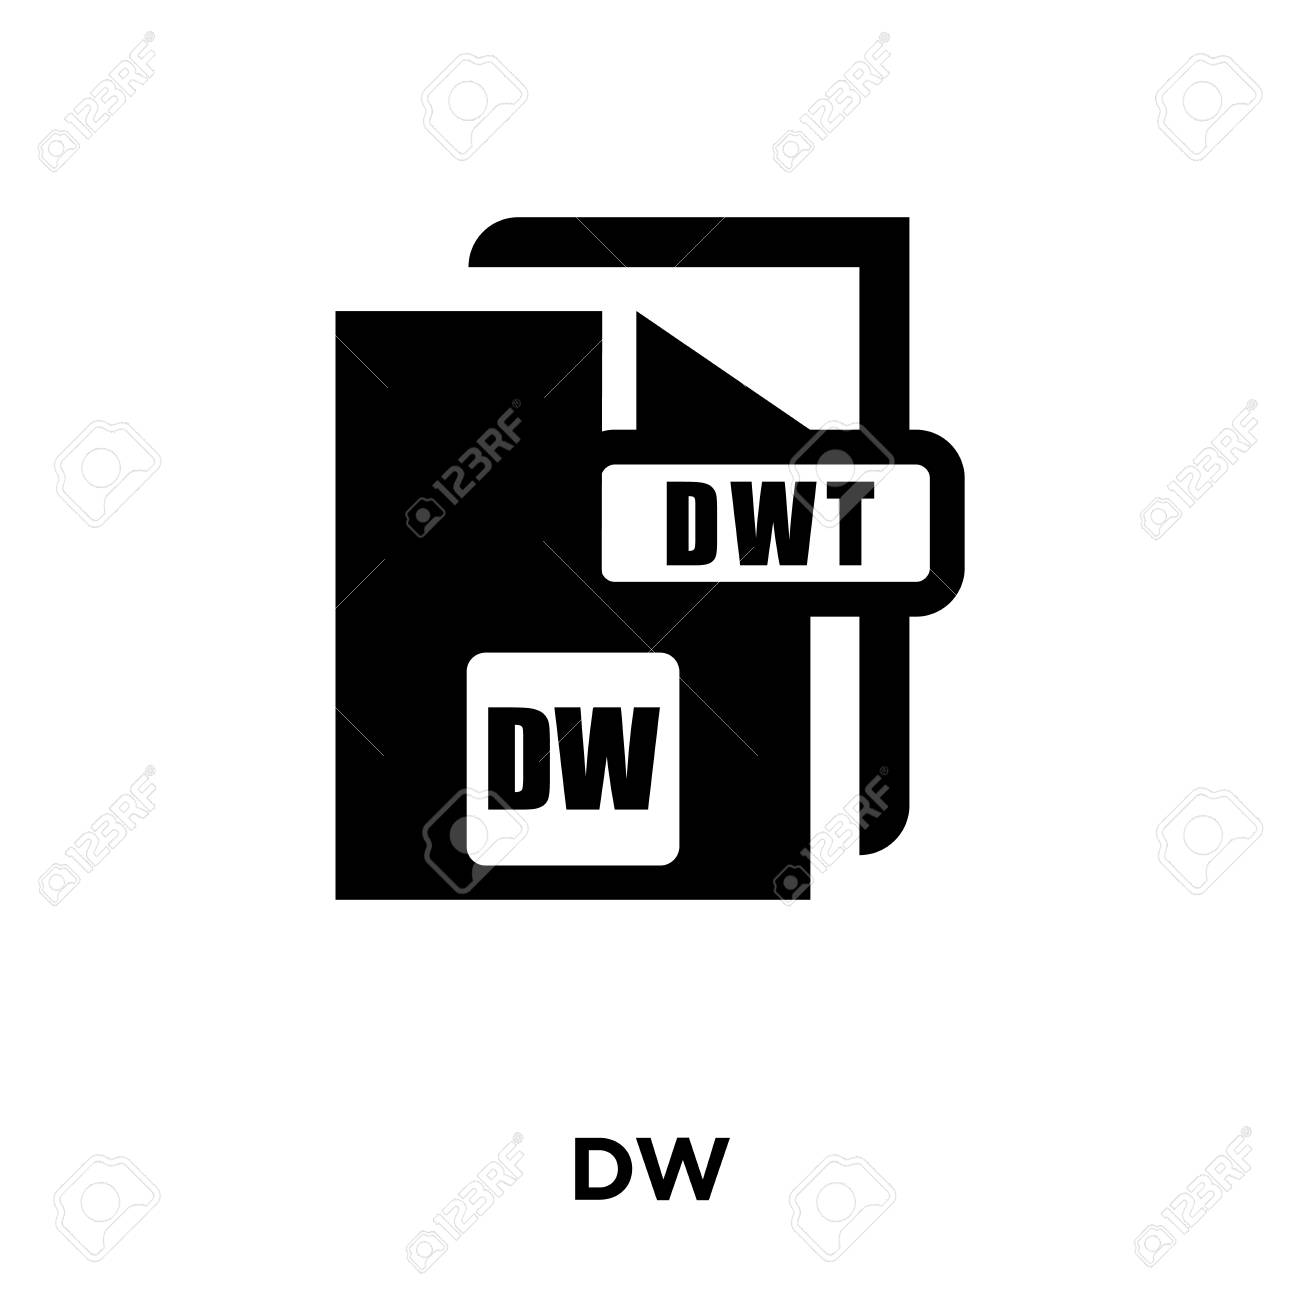 DW Icon Vector Isolated On White Background Logo Concept Of 1300x1300